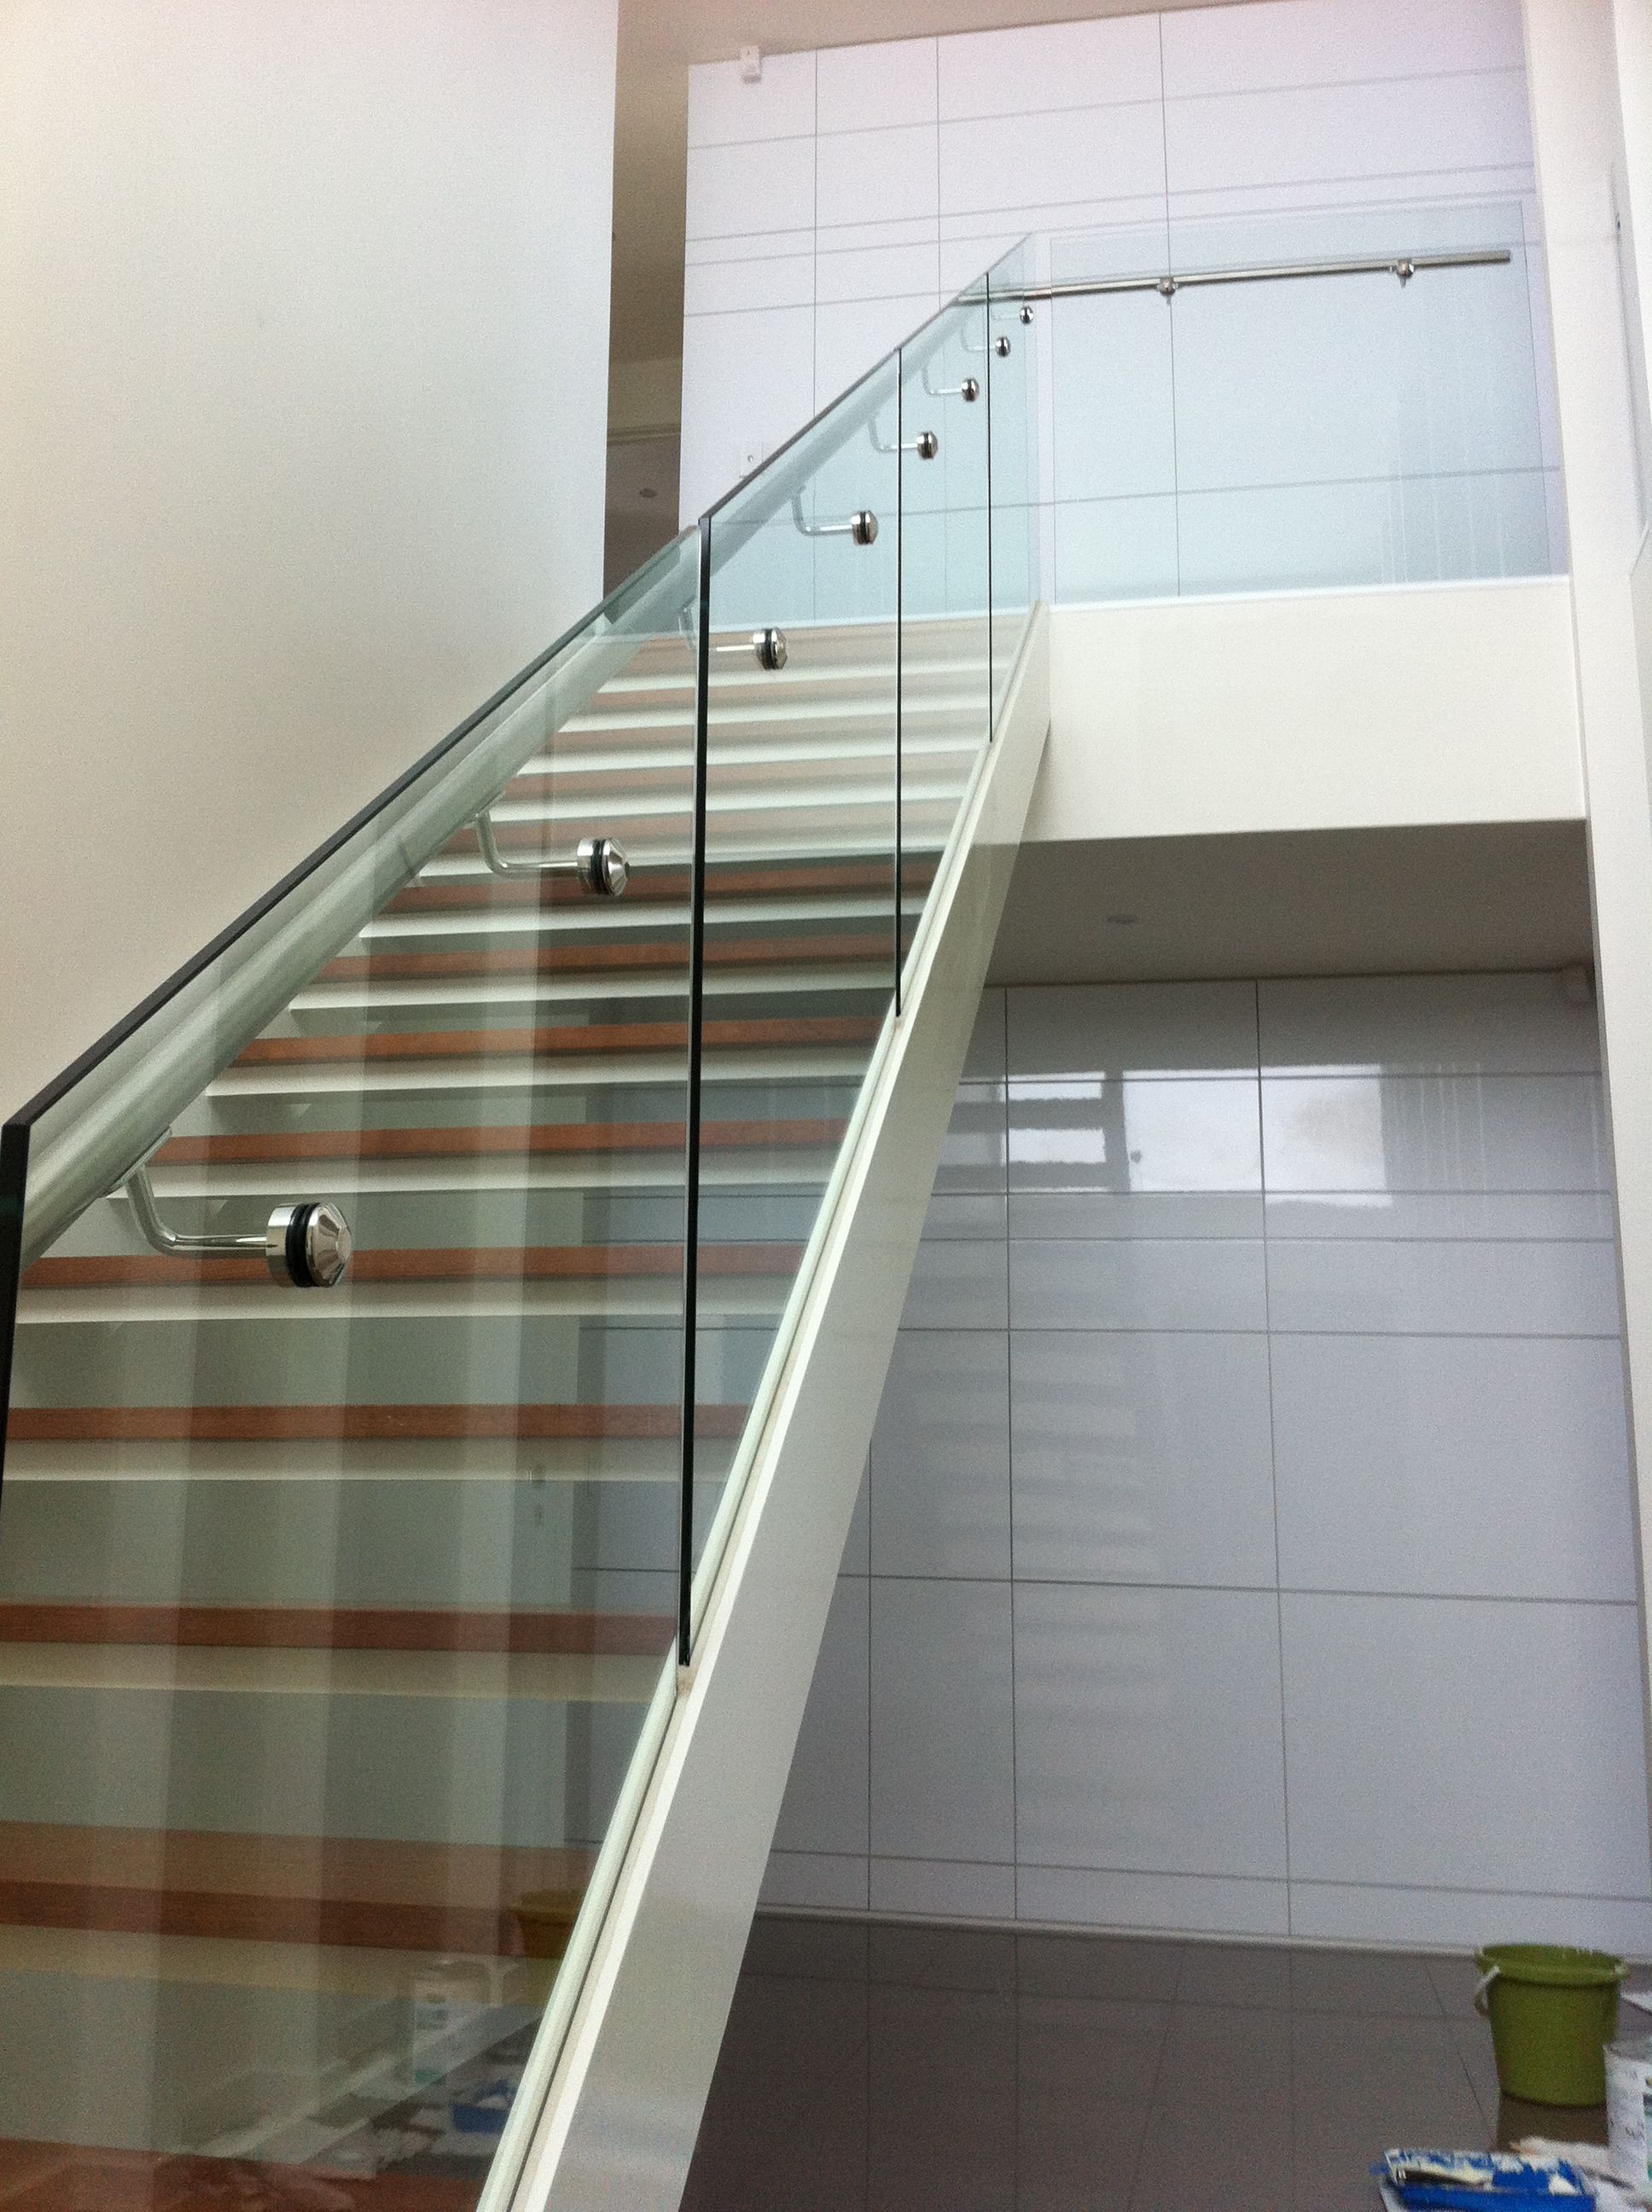 Glass Balustrade For Stairs With Side Mount Stainless Steel Handrail.